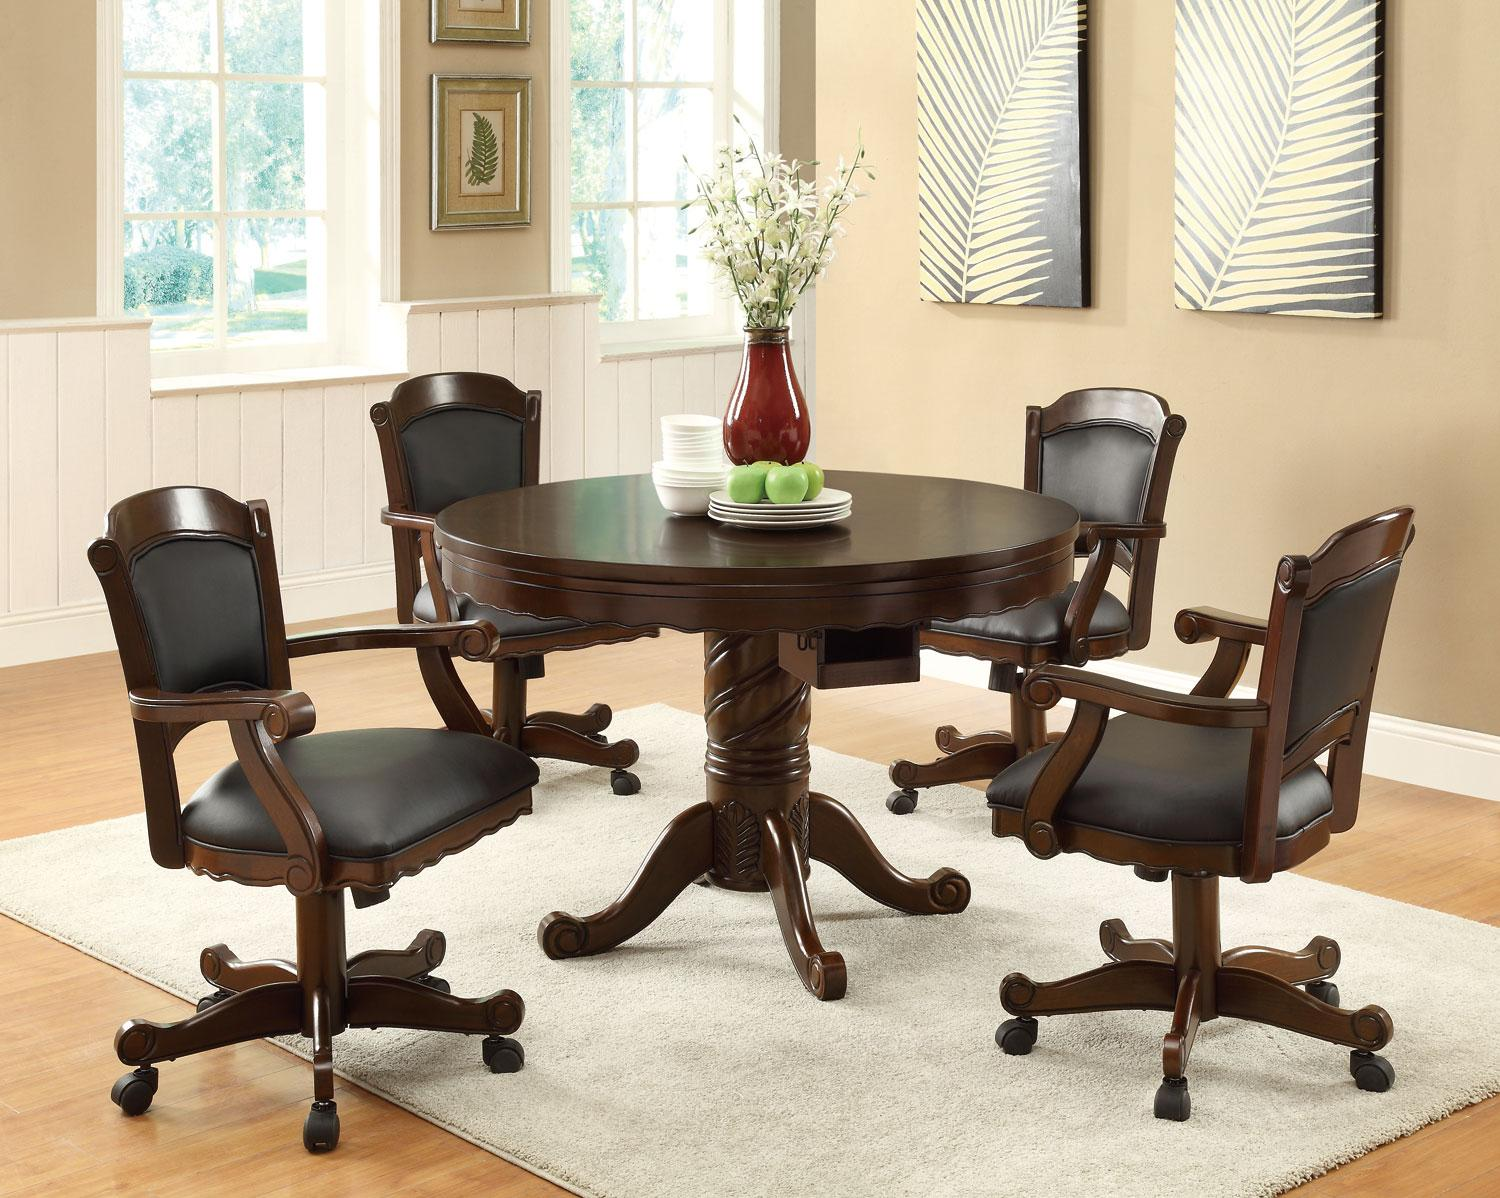 Furniture Outlet Bumper Pool Poker Table Dining Table 3 In 1 Caster Chairs Coaster 100871 100872 Los Angeles Furniture Outlet Bumper Pool Poker Table Dining Table 3 In 1 Caster Chairs Coaster